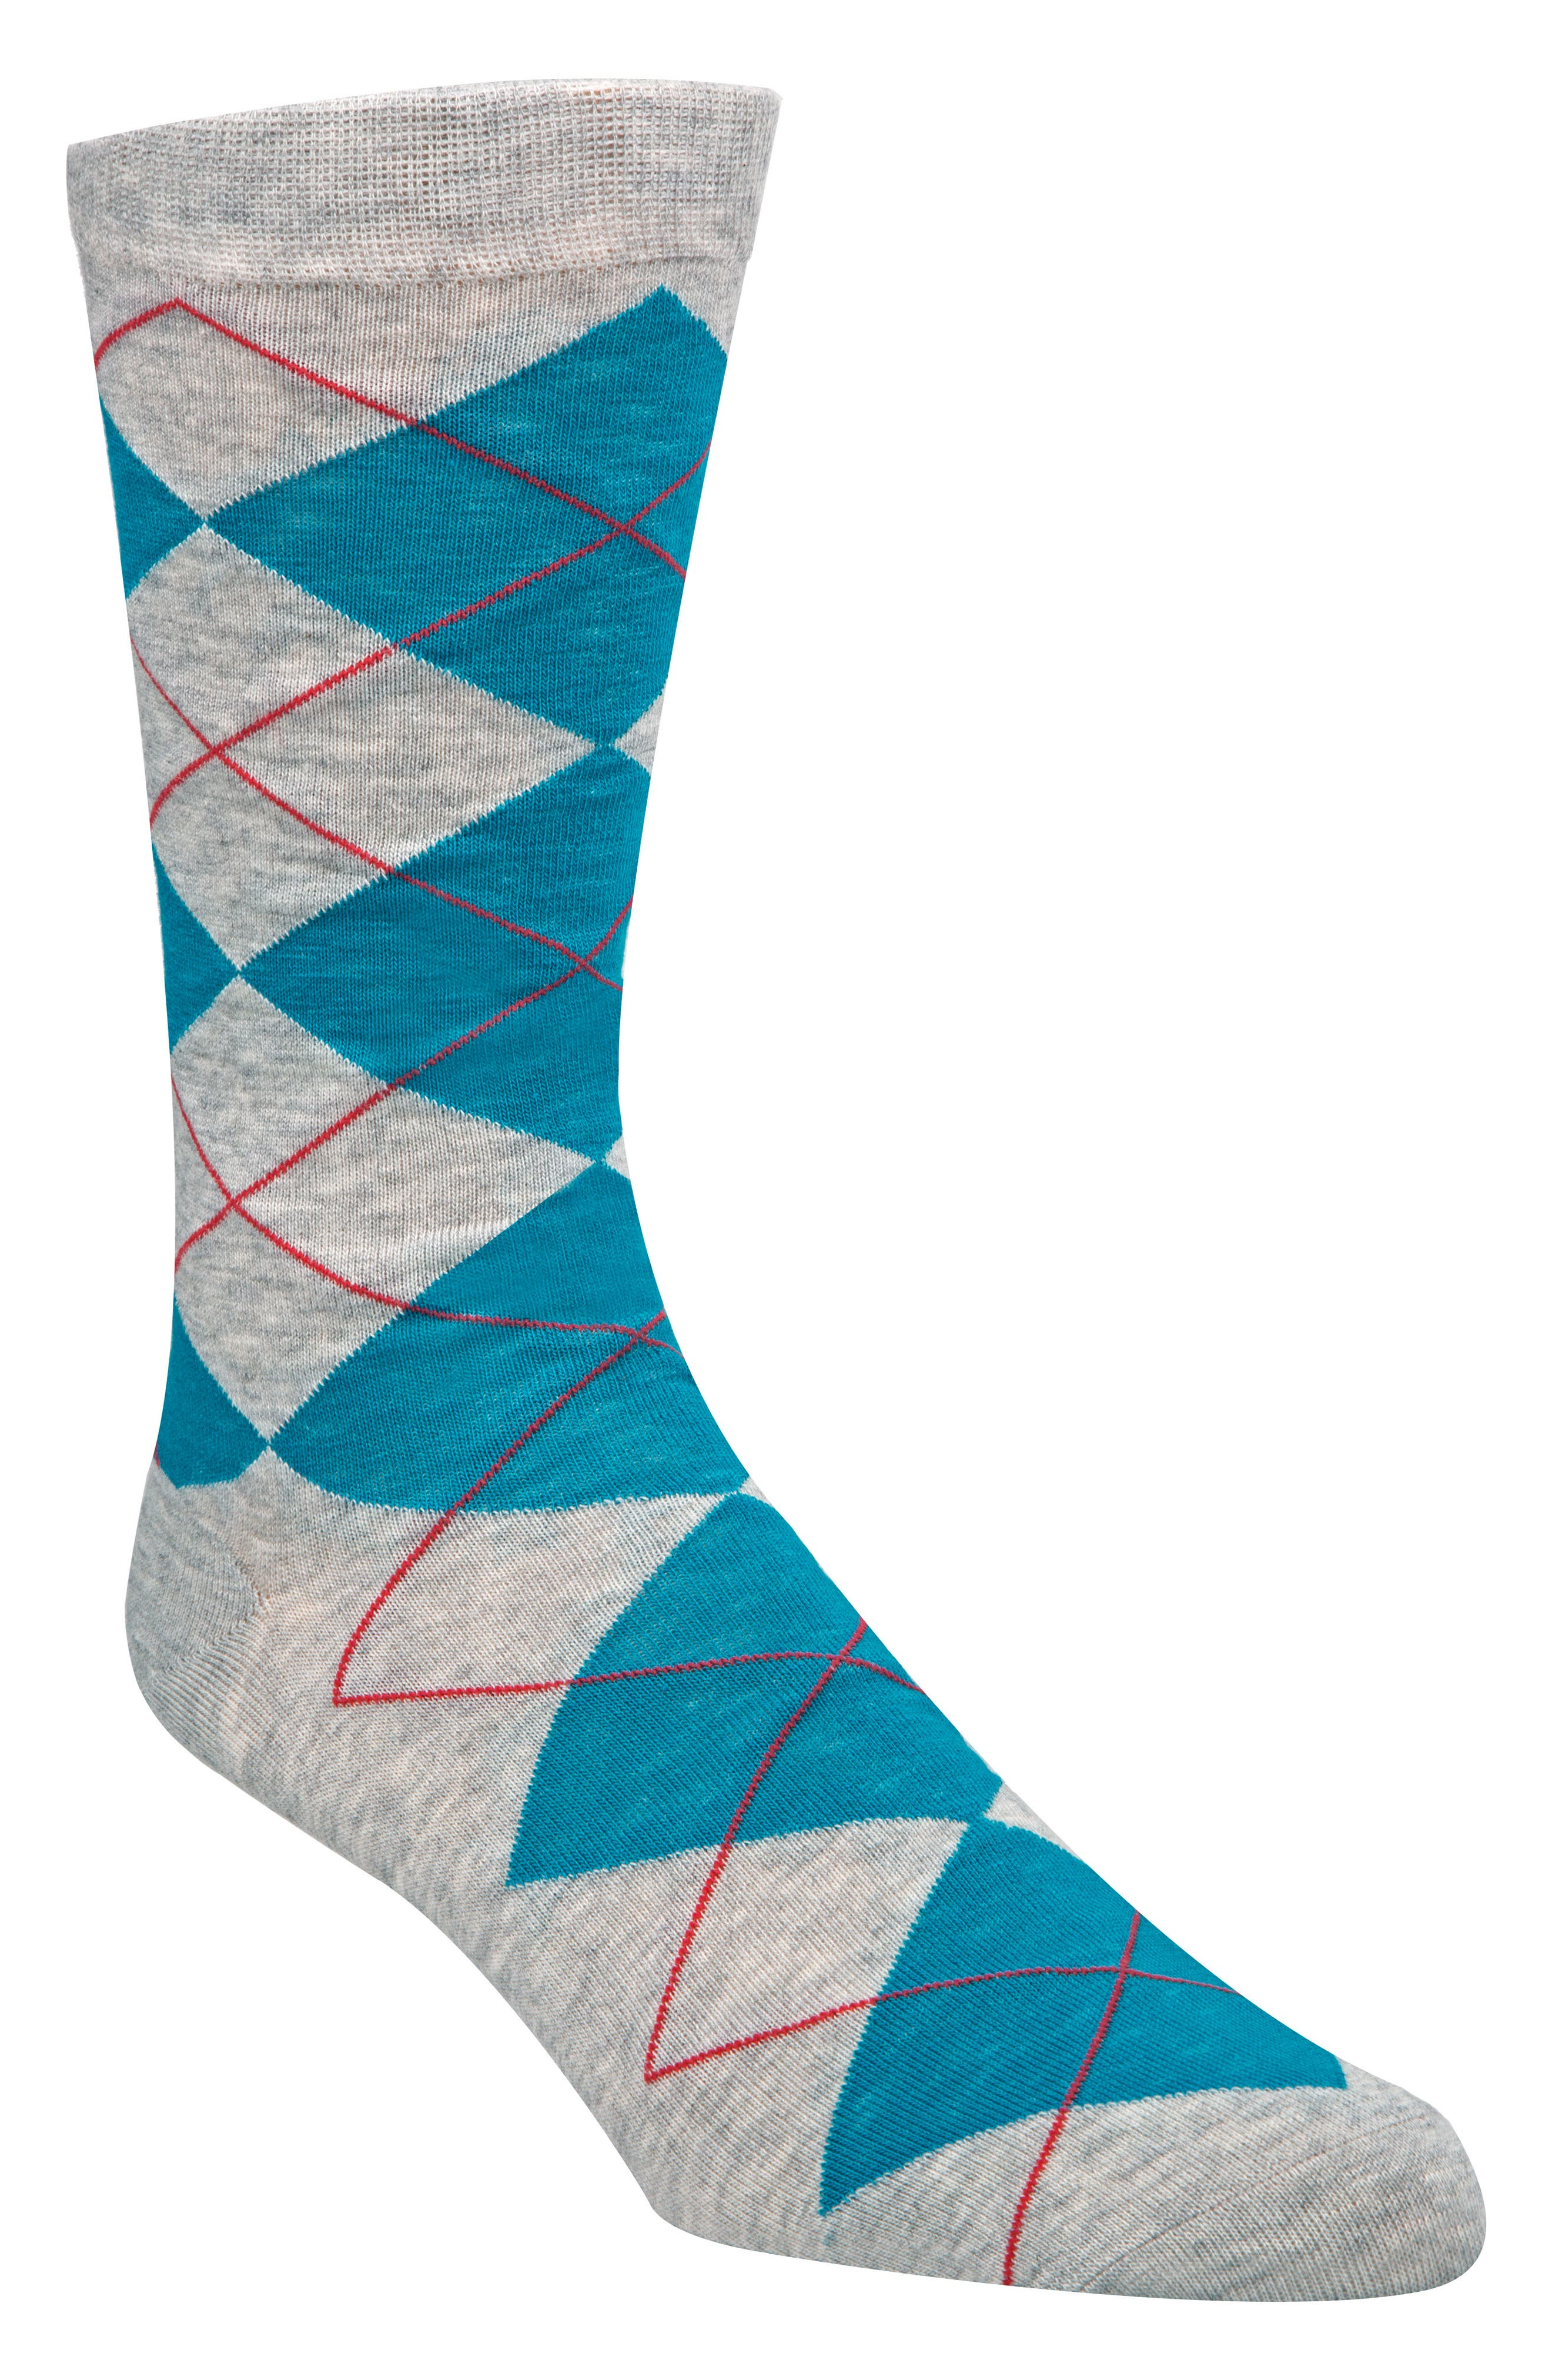 Argyle Socks,                             Main thumbnail 1, color,